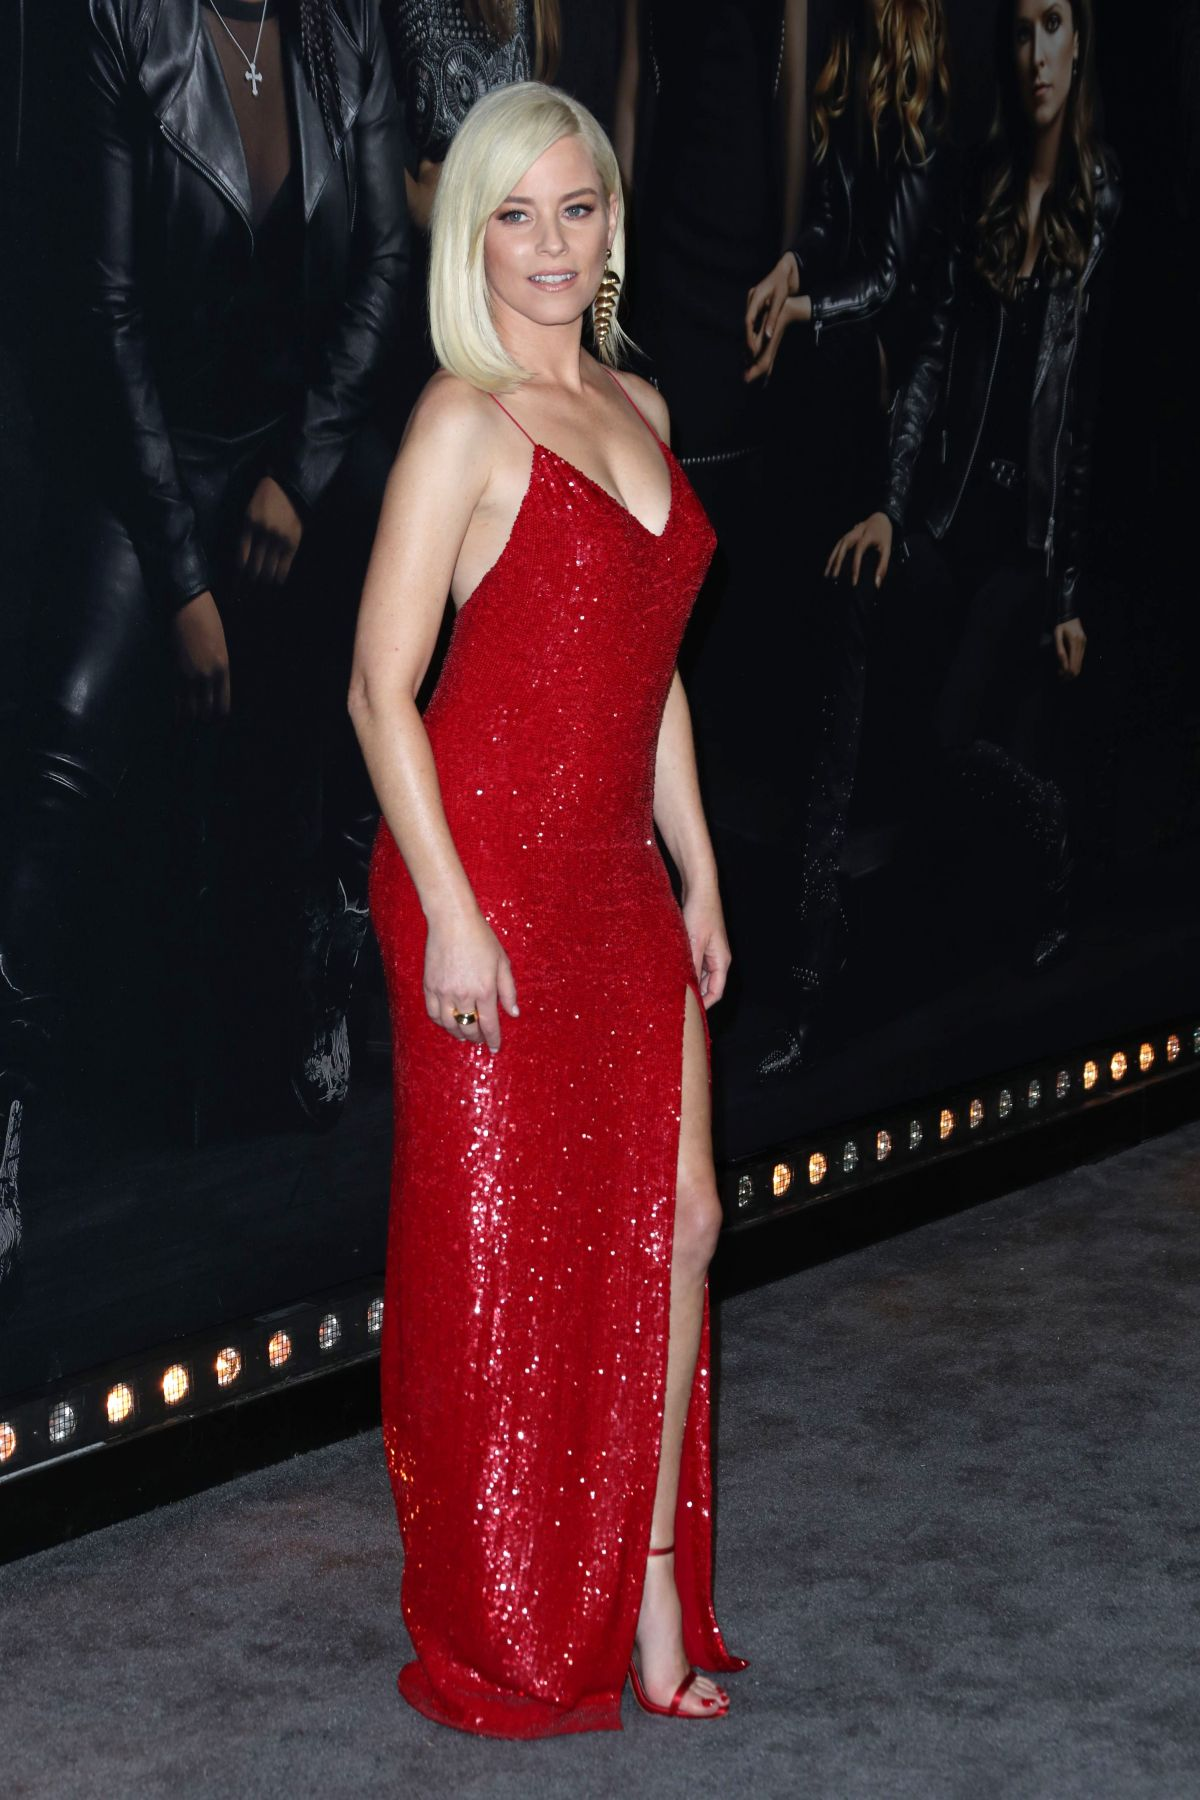 Elizabeth Banks At Pitch Perfect 3 Premiere In Los Angeles